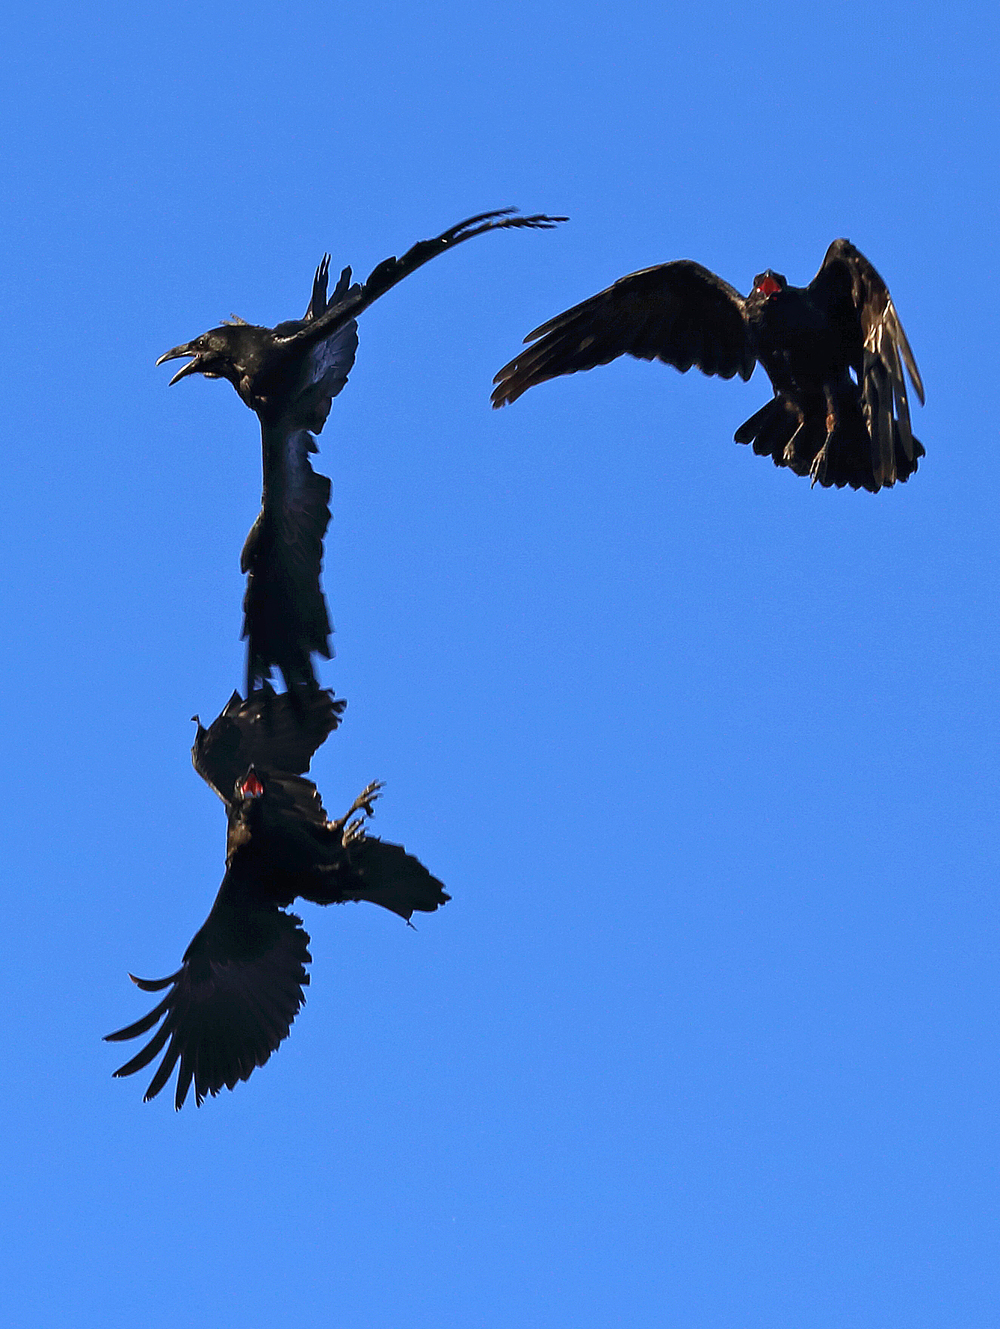 Ravens in flight playing fighting flying aerobatic raucous cool corvids Corvus corax big black bird Southeast Alaska